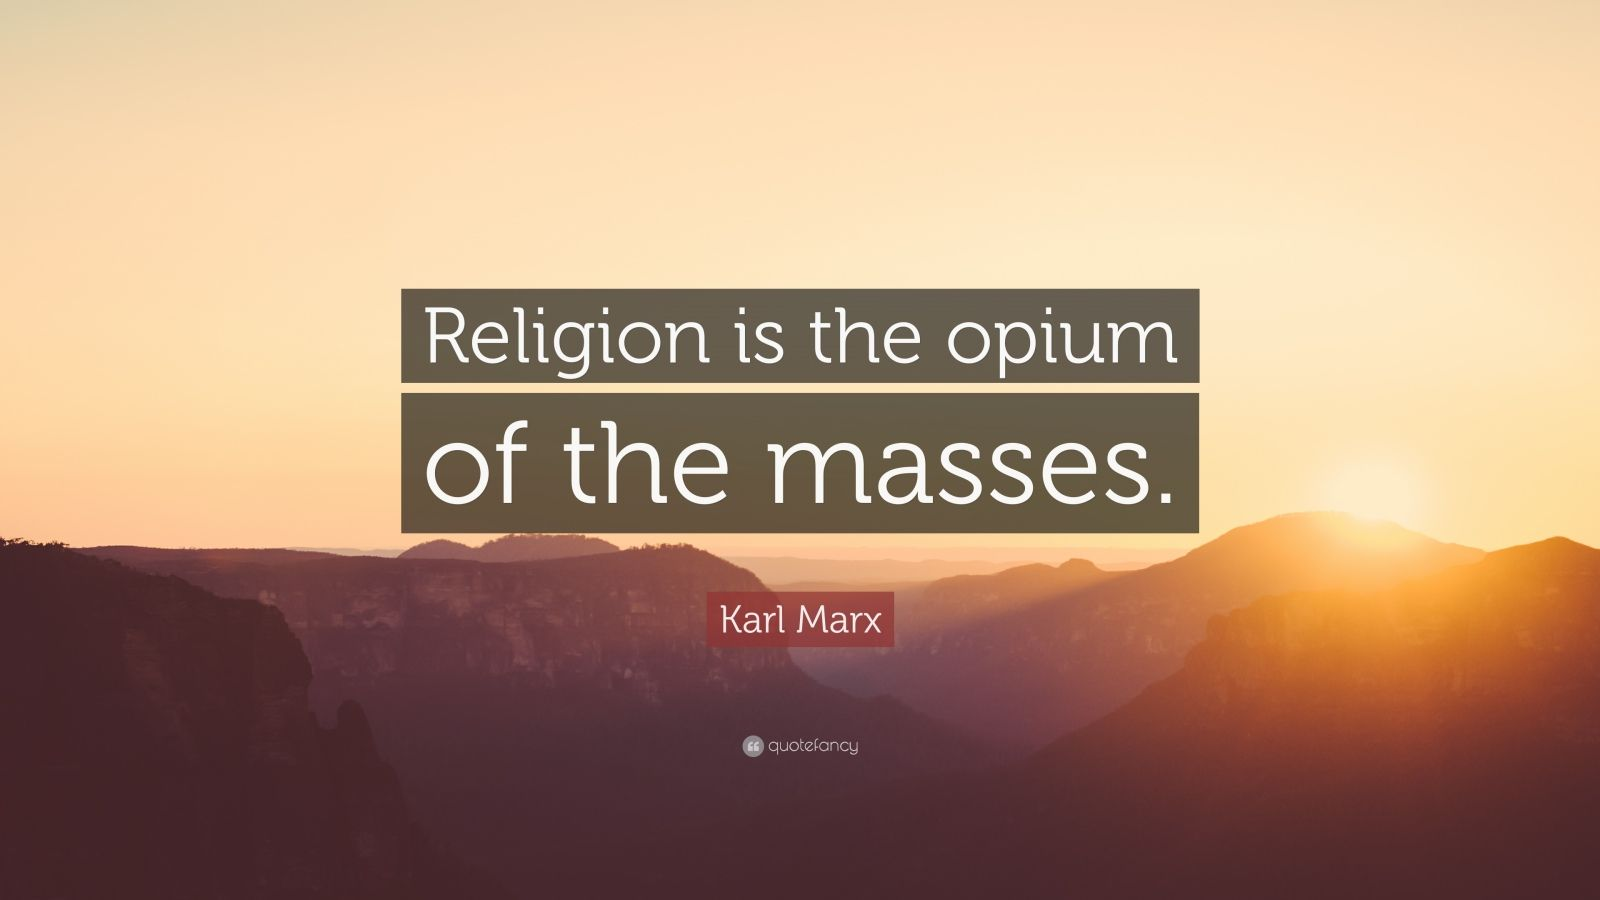 Medicine Quotes Wallpaper Karl Marx Quote Religion Is The Opium Of The Masses